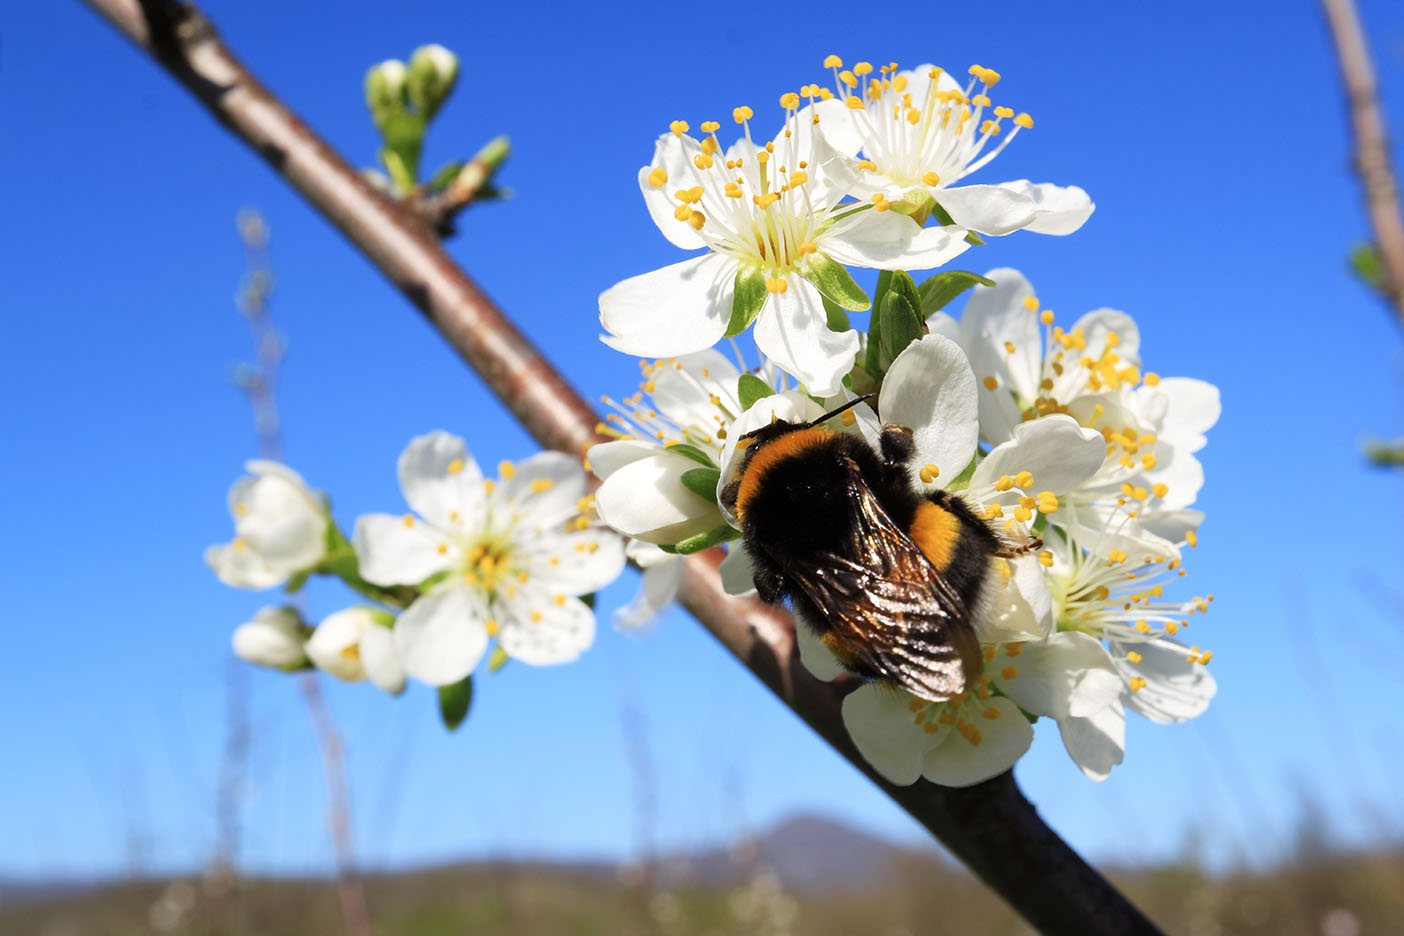 Bumblebee pollinating apple blossom in an orchard